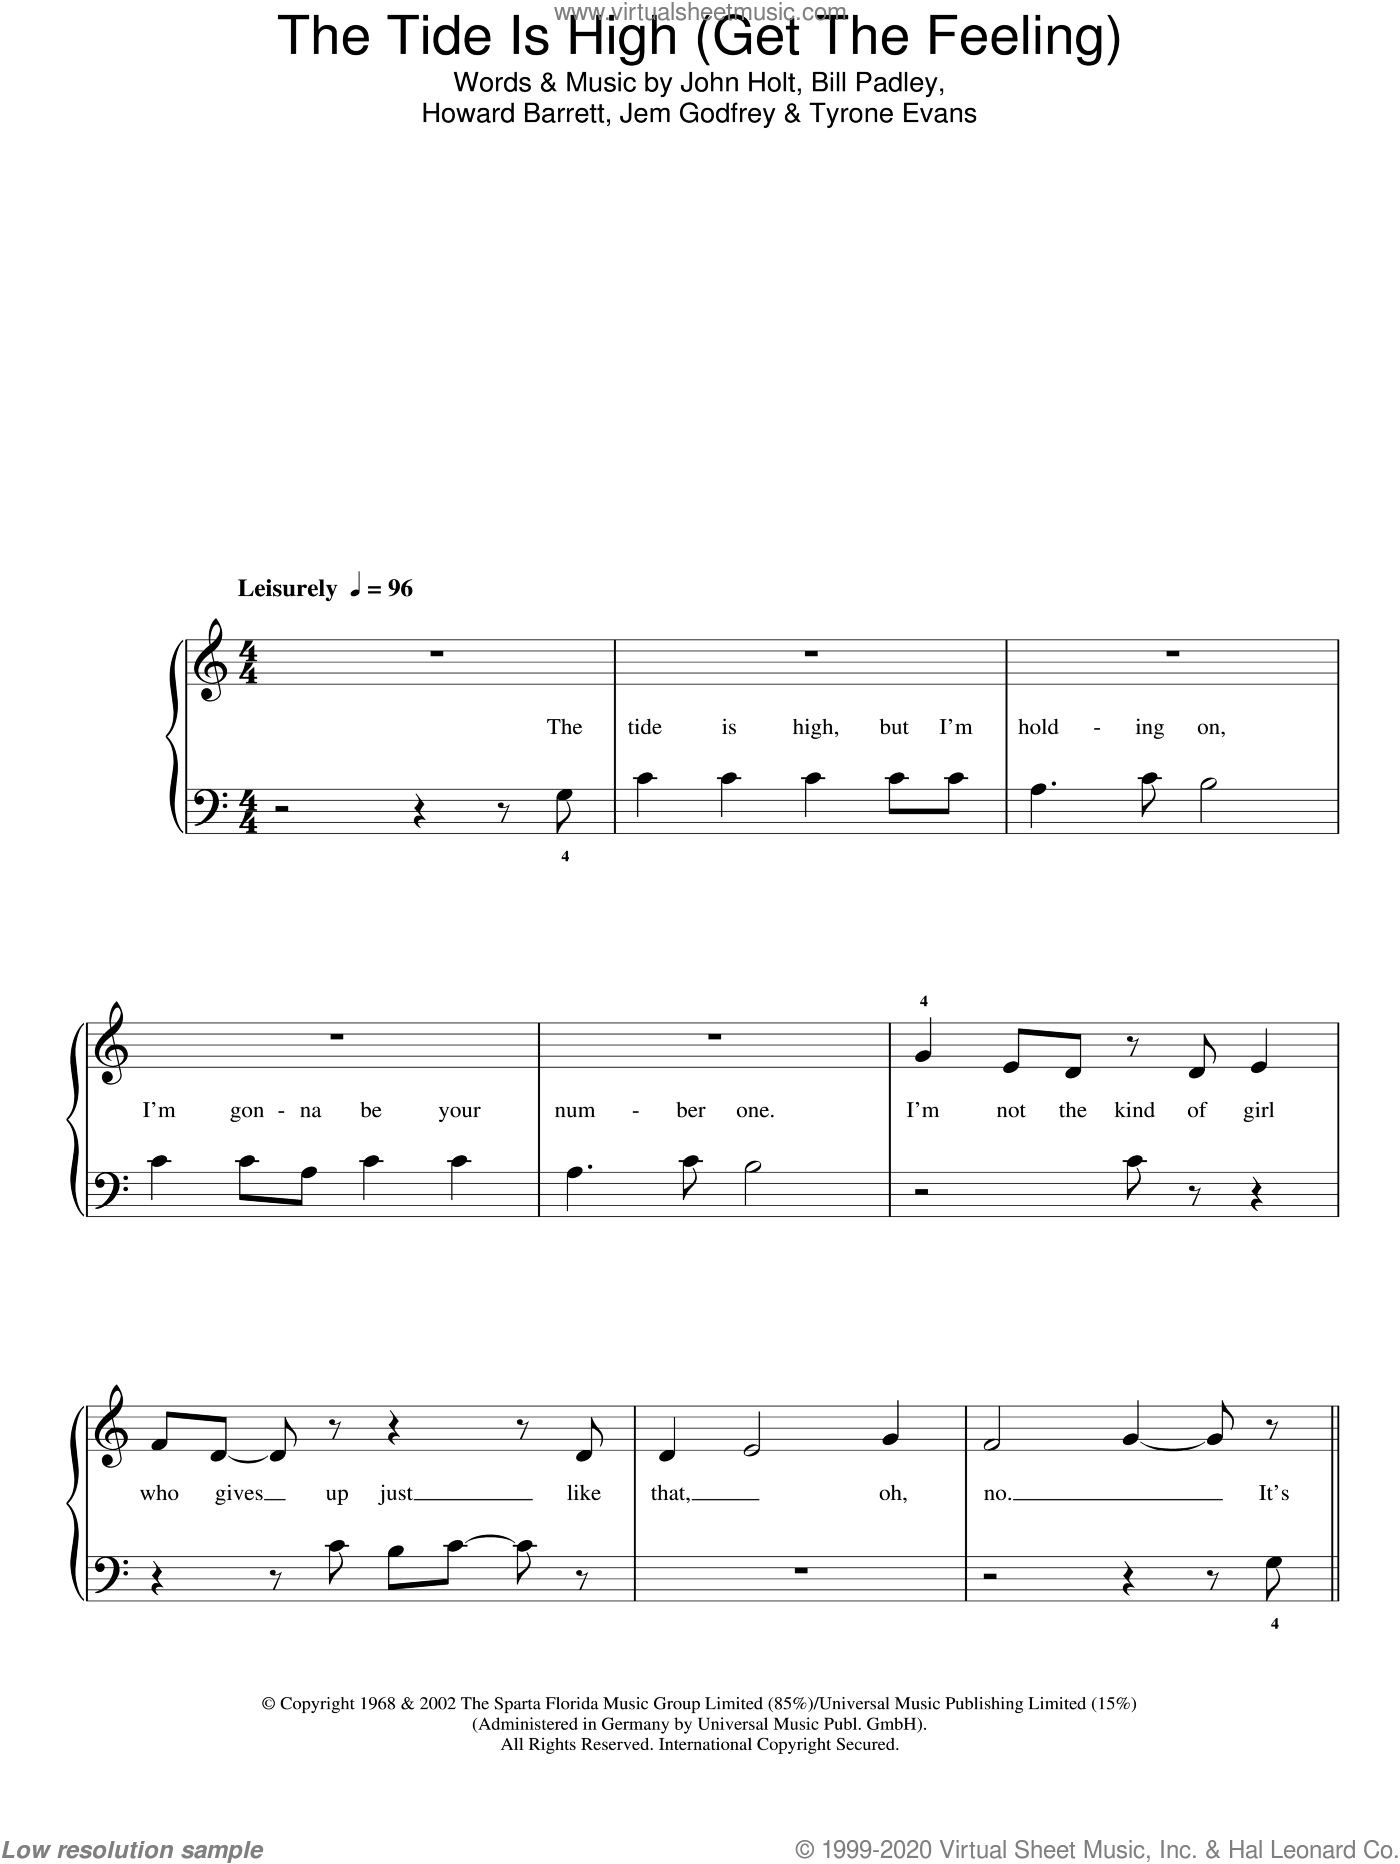 The Tide Is High (Get The Feeling) sheet music for piano solo by Blondie, Bill Padley, Howard Barrett, Jem Godfrey, John Holt and Tyrone Evans, easy skill level